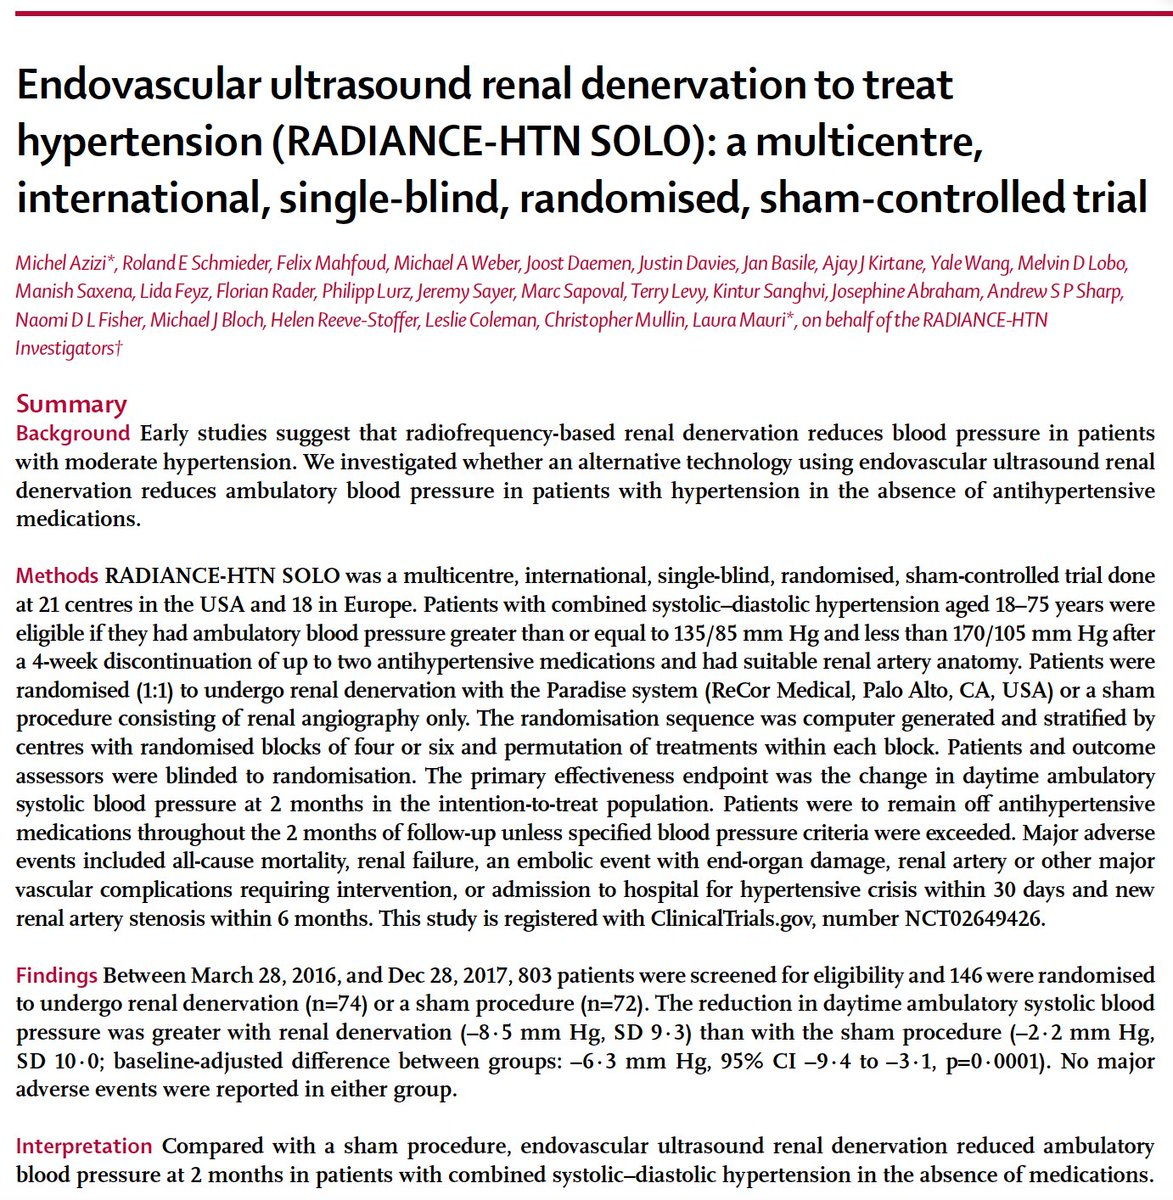 Two new sham-controlled trials today of renal denevation and hypertension on and off meds reported positive, using ultrasound and radiofrequency energy delivery. Diff vs. sham ~4-7 mmHg in ambulatory BP, equivalent to 1-1.5 medications. No major safety concerns through 6 months. <br>http://pic.twitter.com/oAODOi34CH